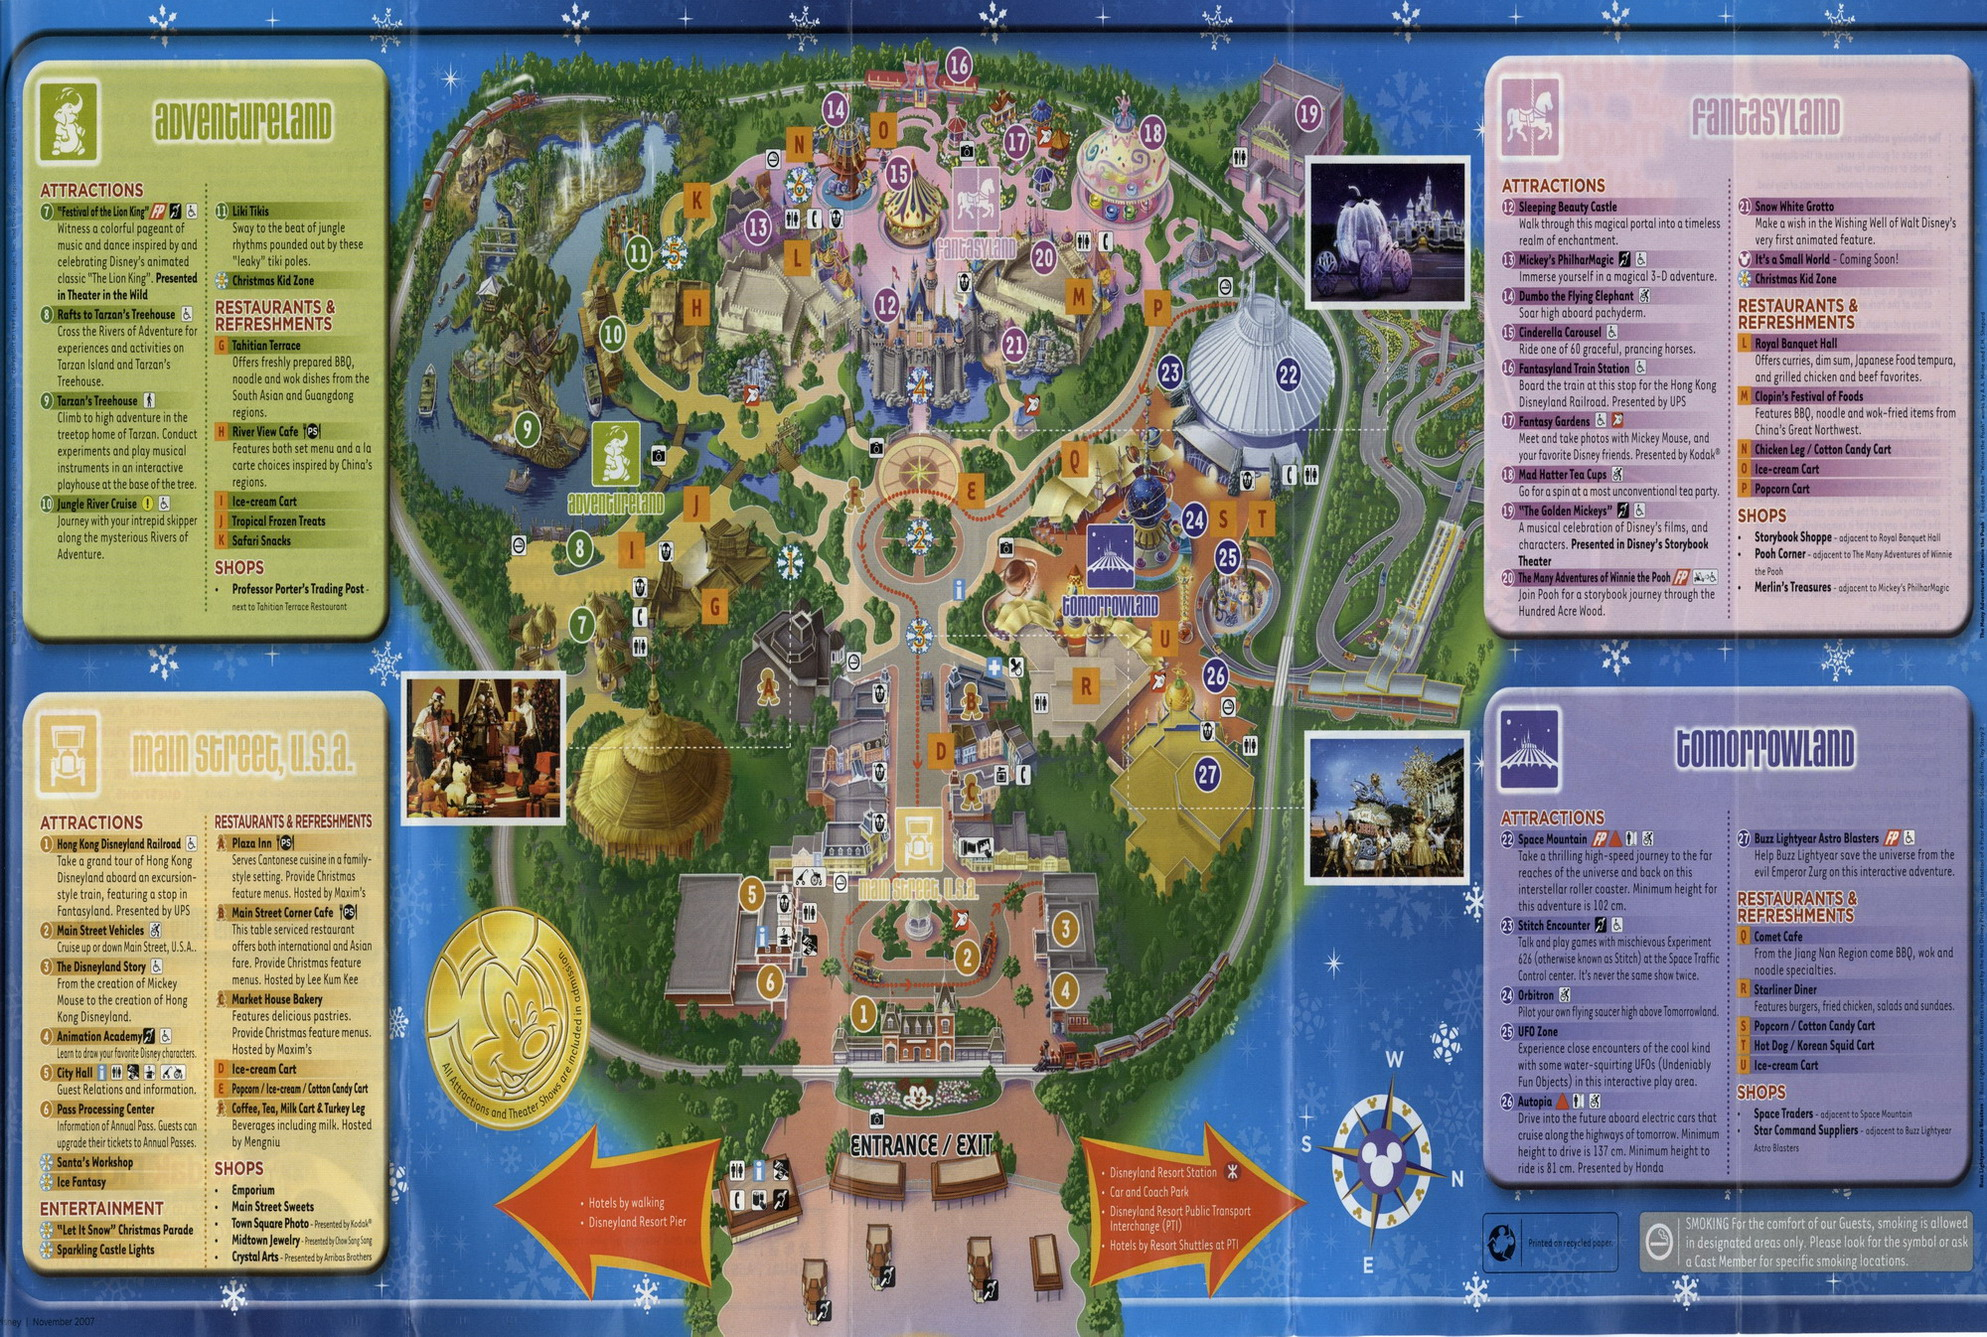 image about Printable Disneyland Maps titled Hong Kong Disneyland Park Map - Hong Kong Maps - China Excursion